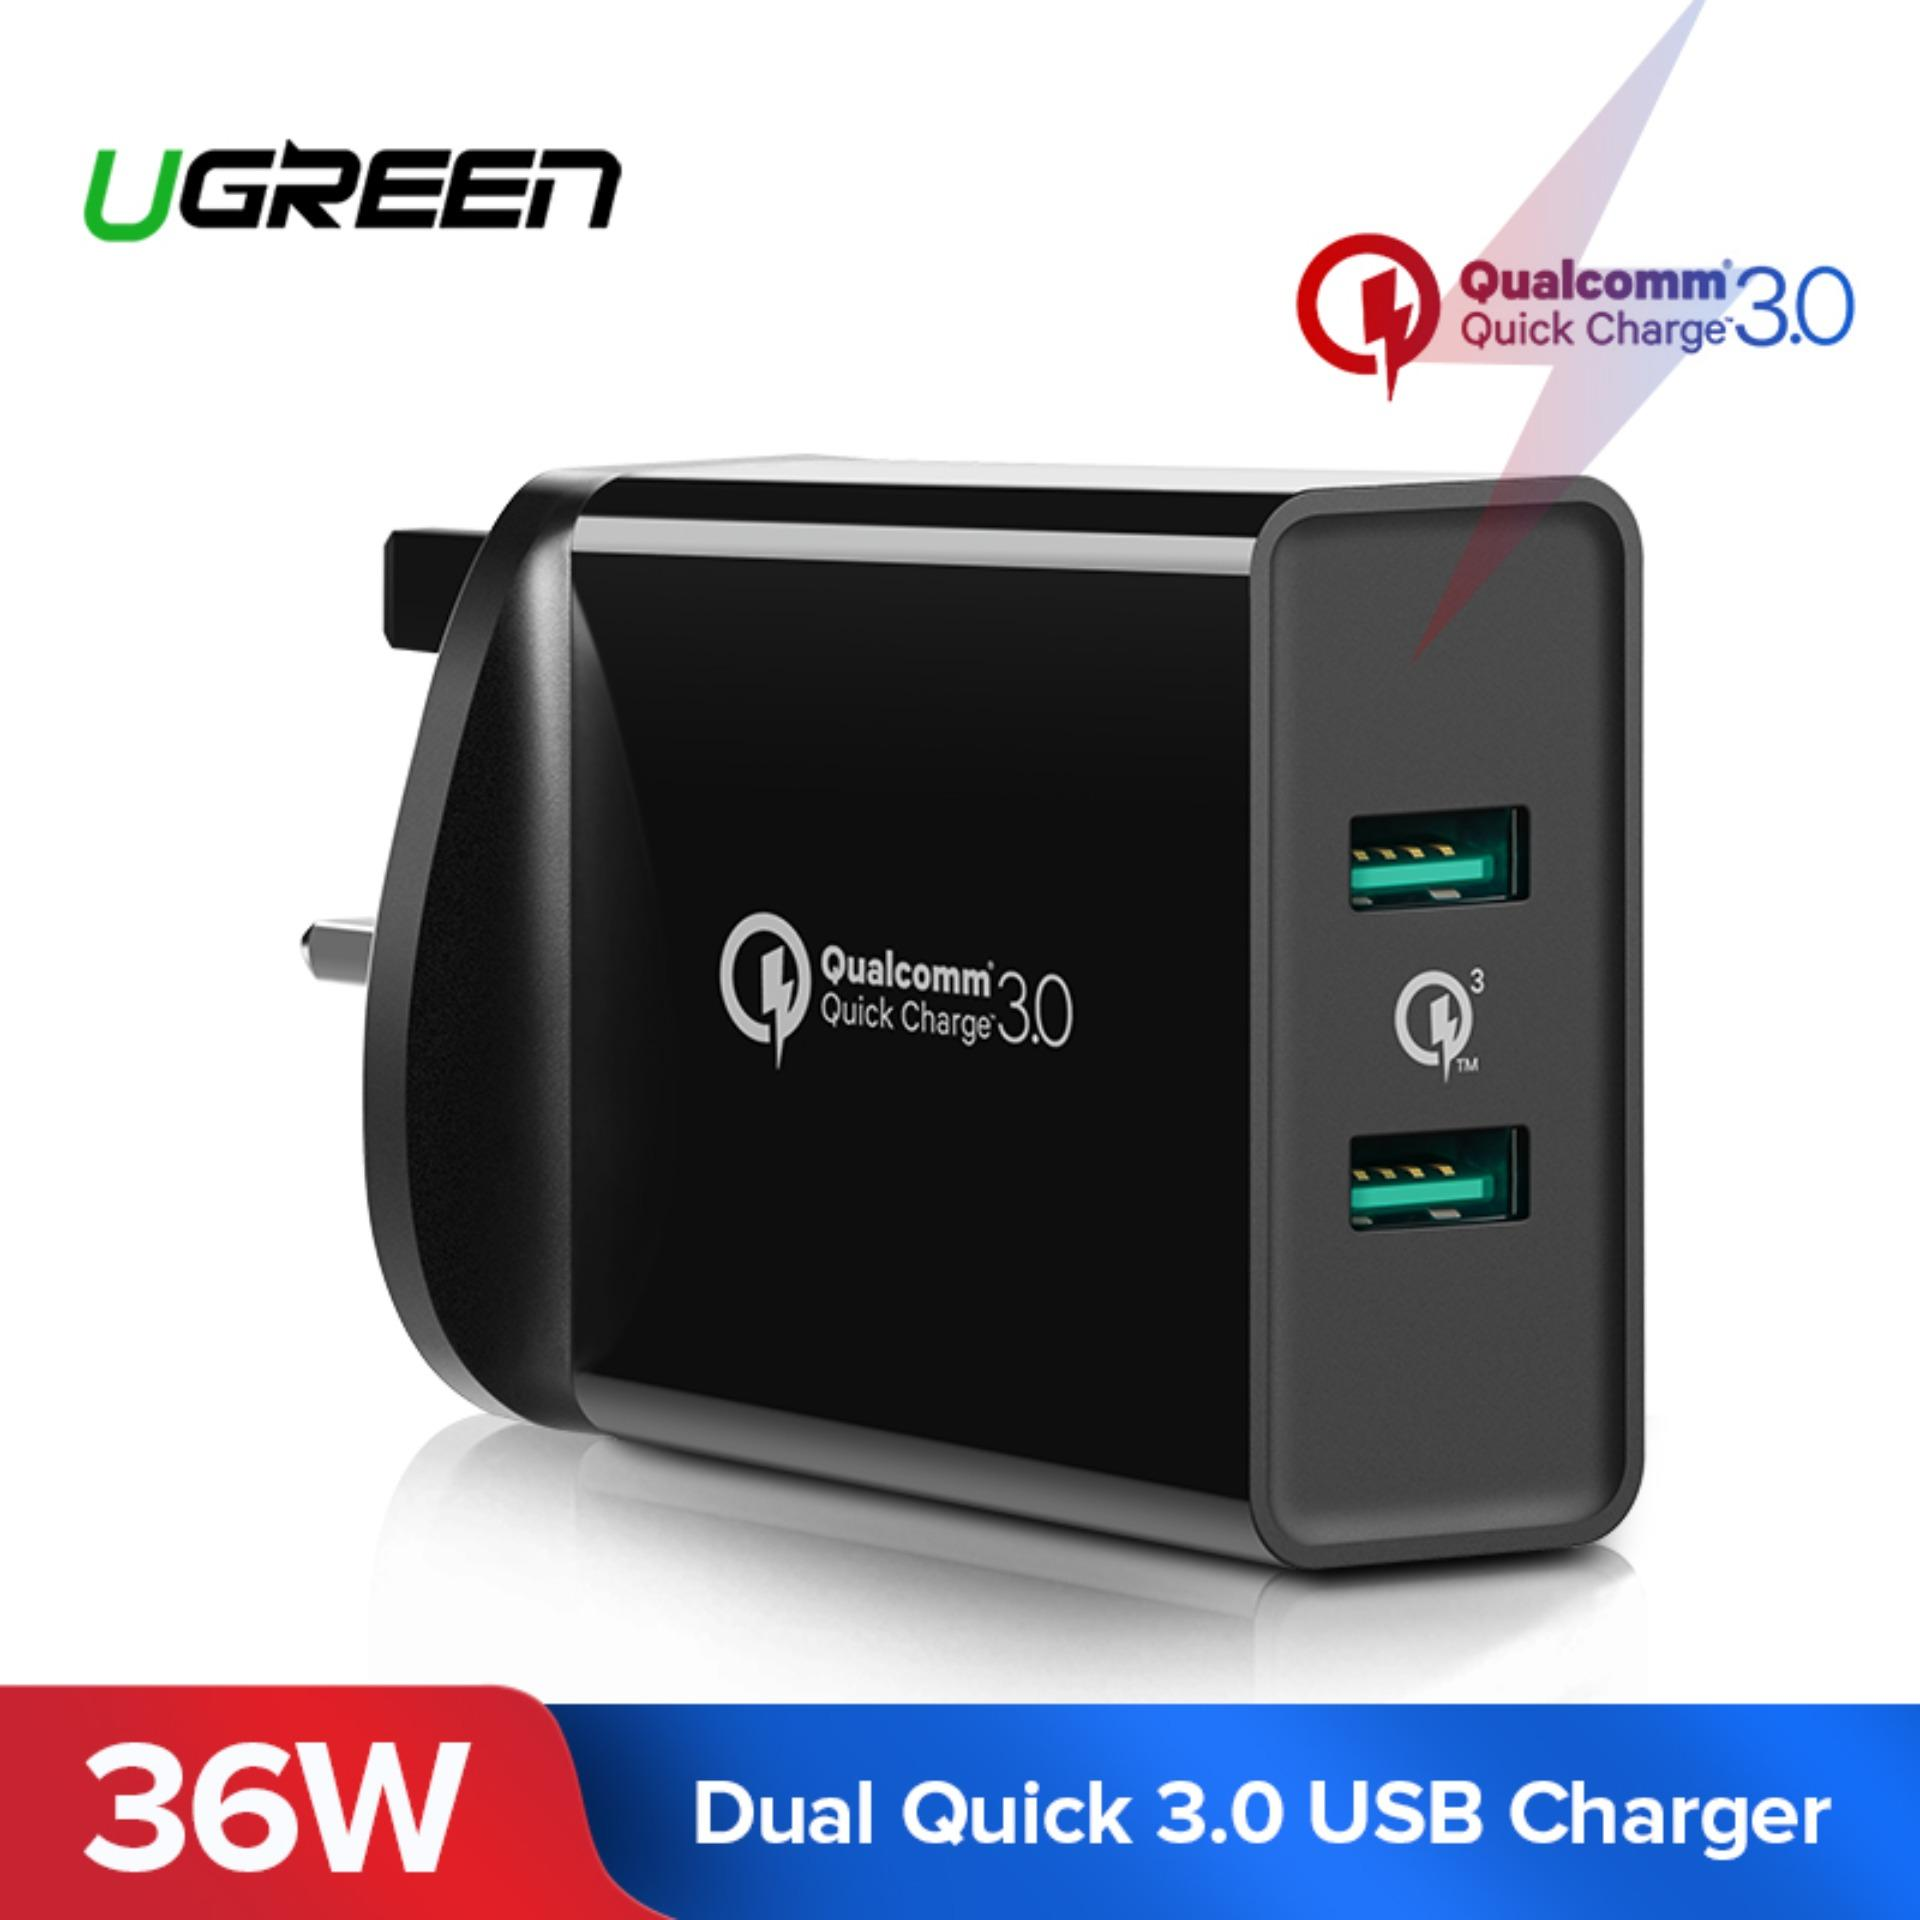 Ugreen Quick Charge 3.0 Usb Charger, 36w Dual Usb Port Qc 3.0 Wall Charger Adapter Fcp Usb Fast Charge For Iphone X 8, Ipad, Samsunggalaxy Note9, Huawei Mate 20,etc-Uk Plug By Ugreen Flagship Store.